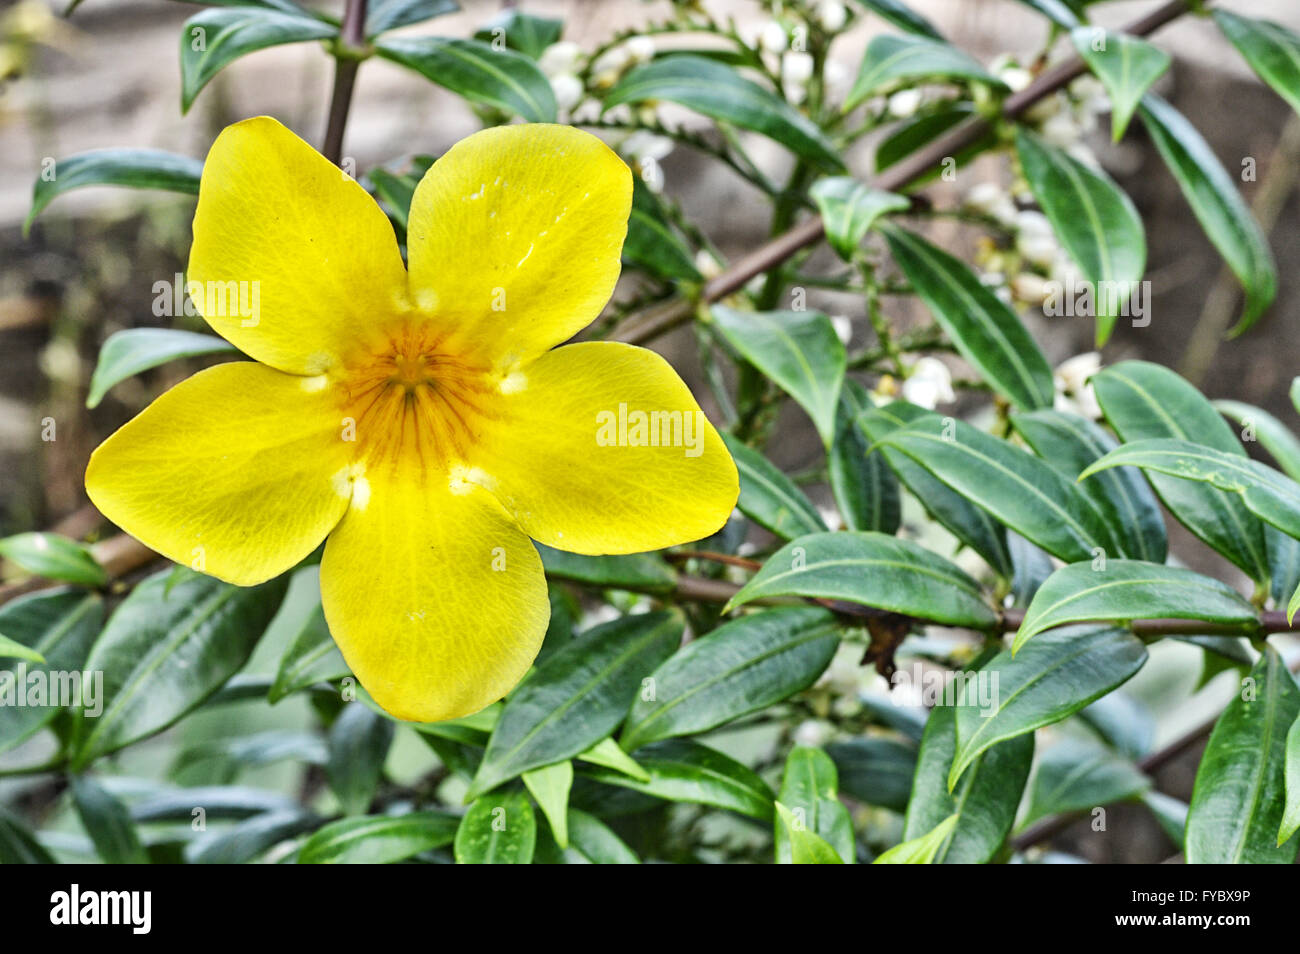 Yellow trumpet flower tree in nature stock photo 102909682 alamy yellow trumpet flower tree in nature mightylinksfo